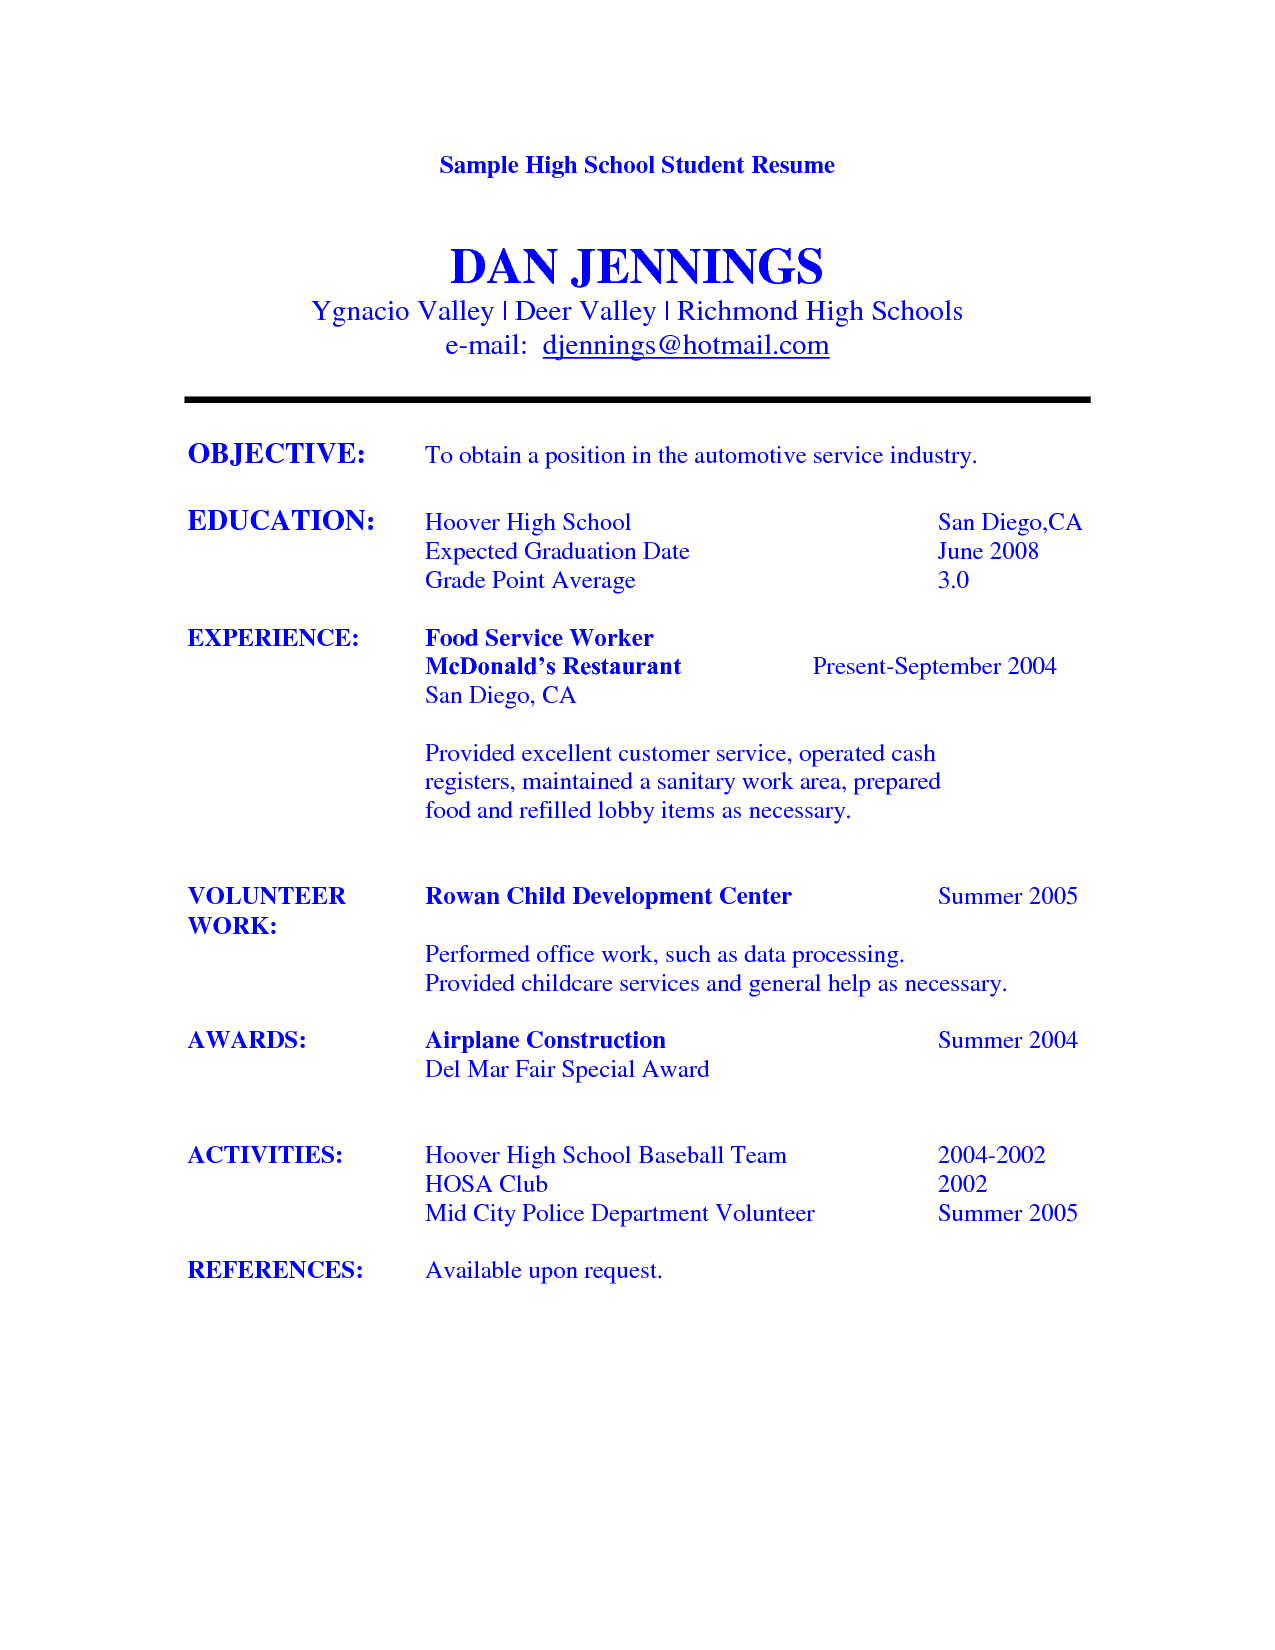 Amazing Resume Example For High School Student Sample Resumes    Http://www.resumecareer